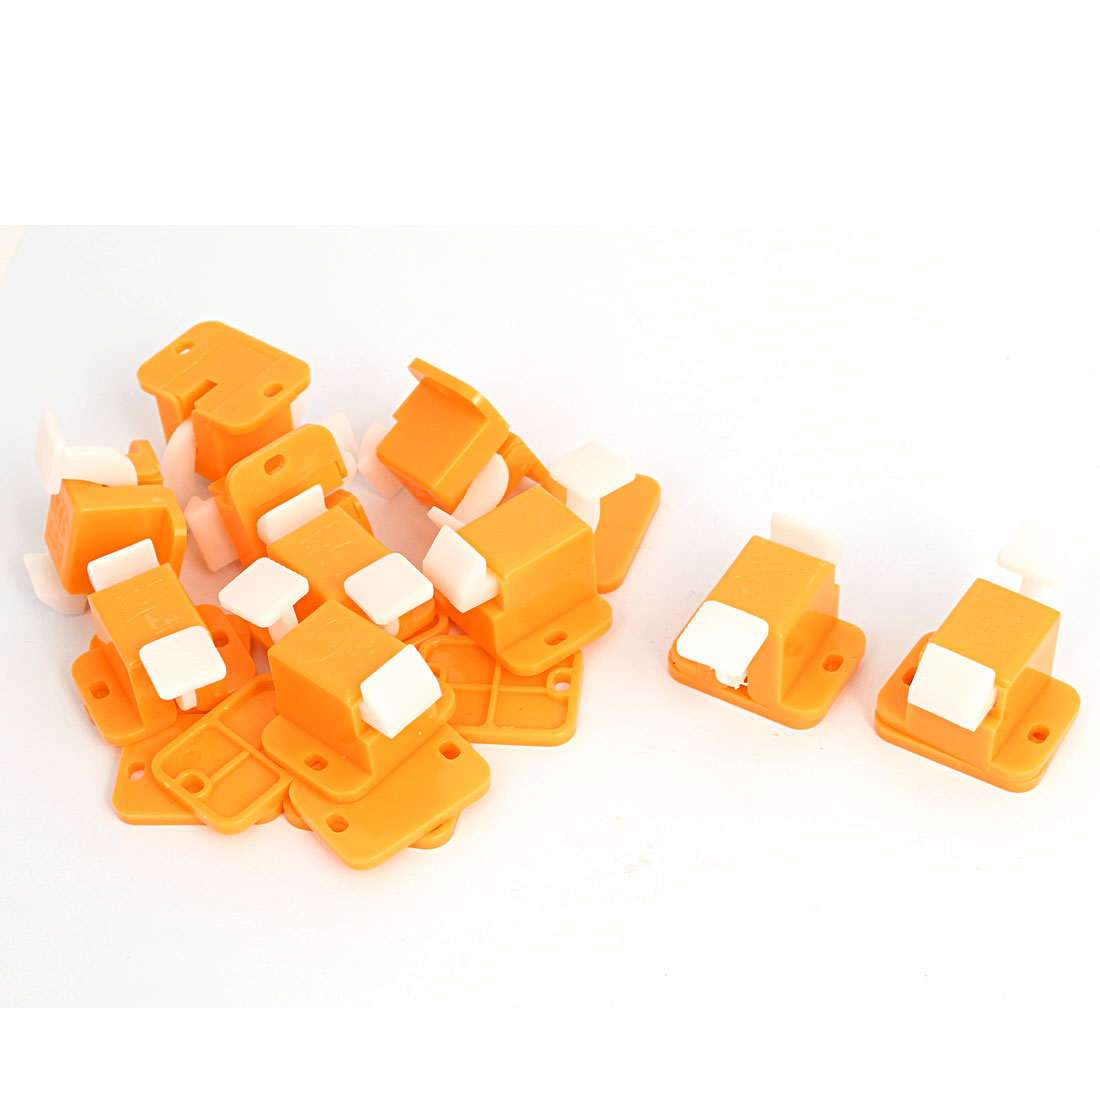 10pcs Yellow White Plastic PCB Board Prototype Test Fixture Jig Edge Latch w Screws